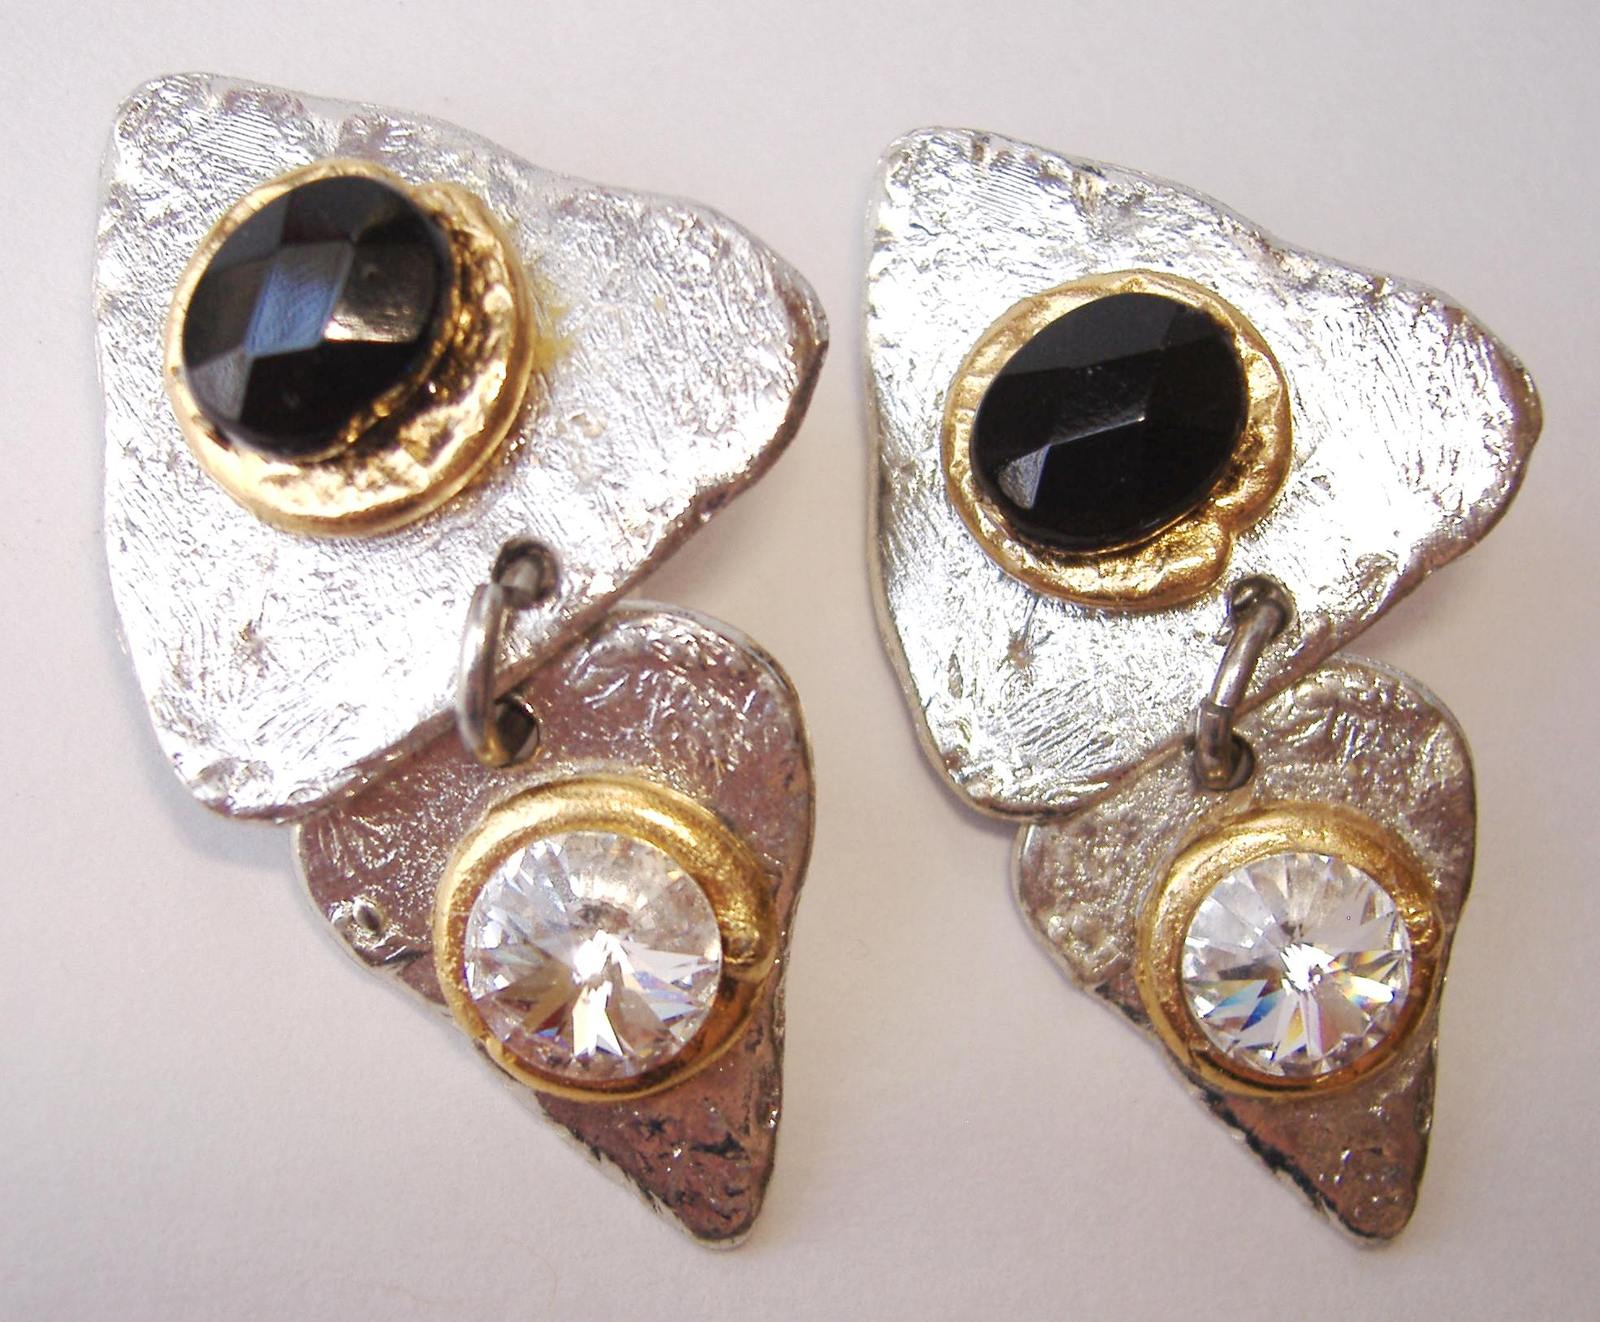 Primary image for Triangle Earrings Black Crystal Unique Handmade Clip On Silver Gold Non Pierced